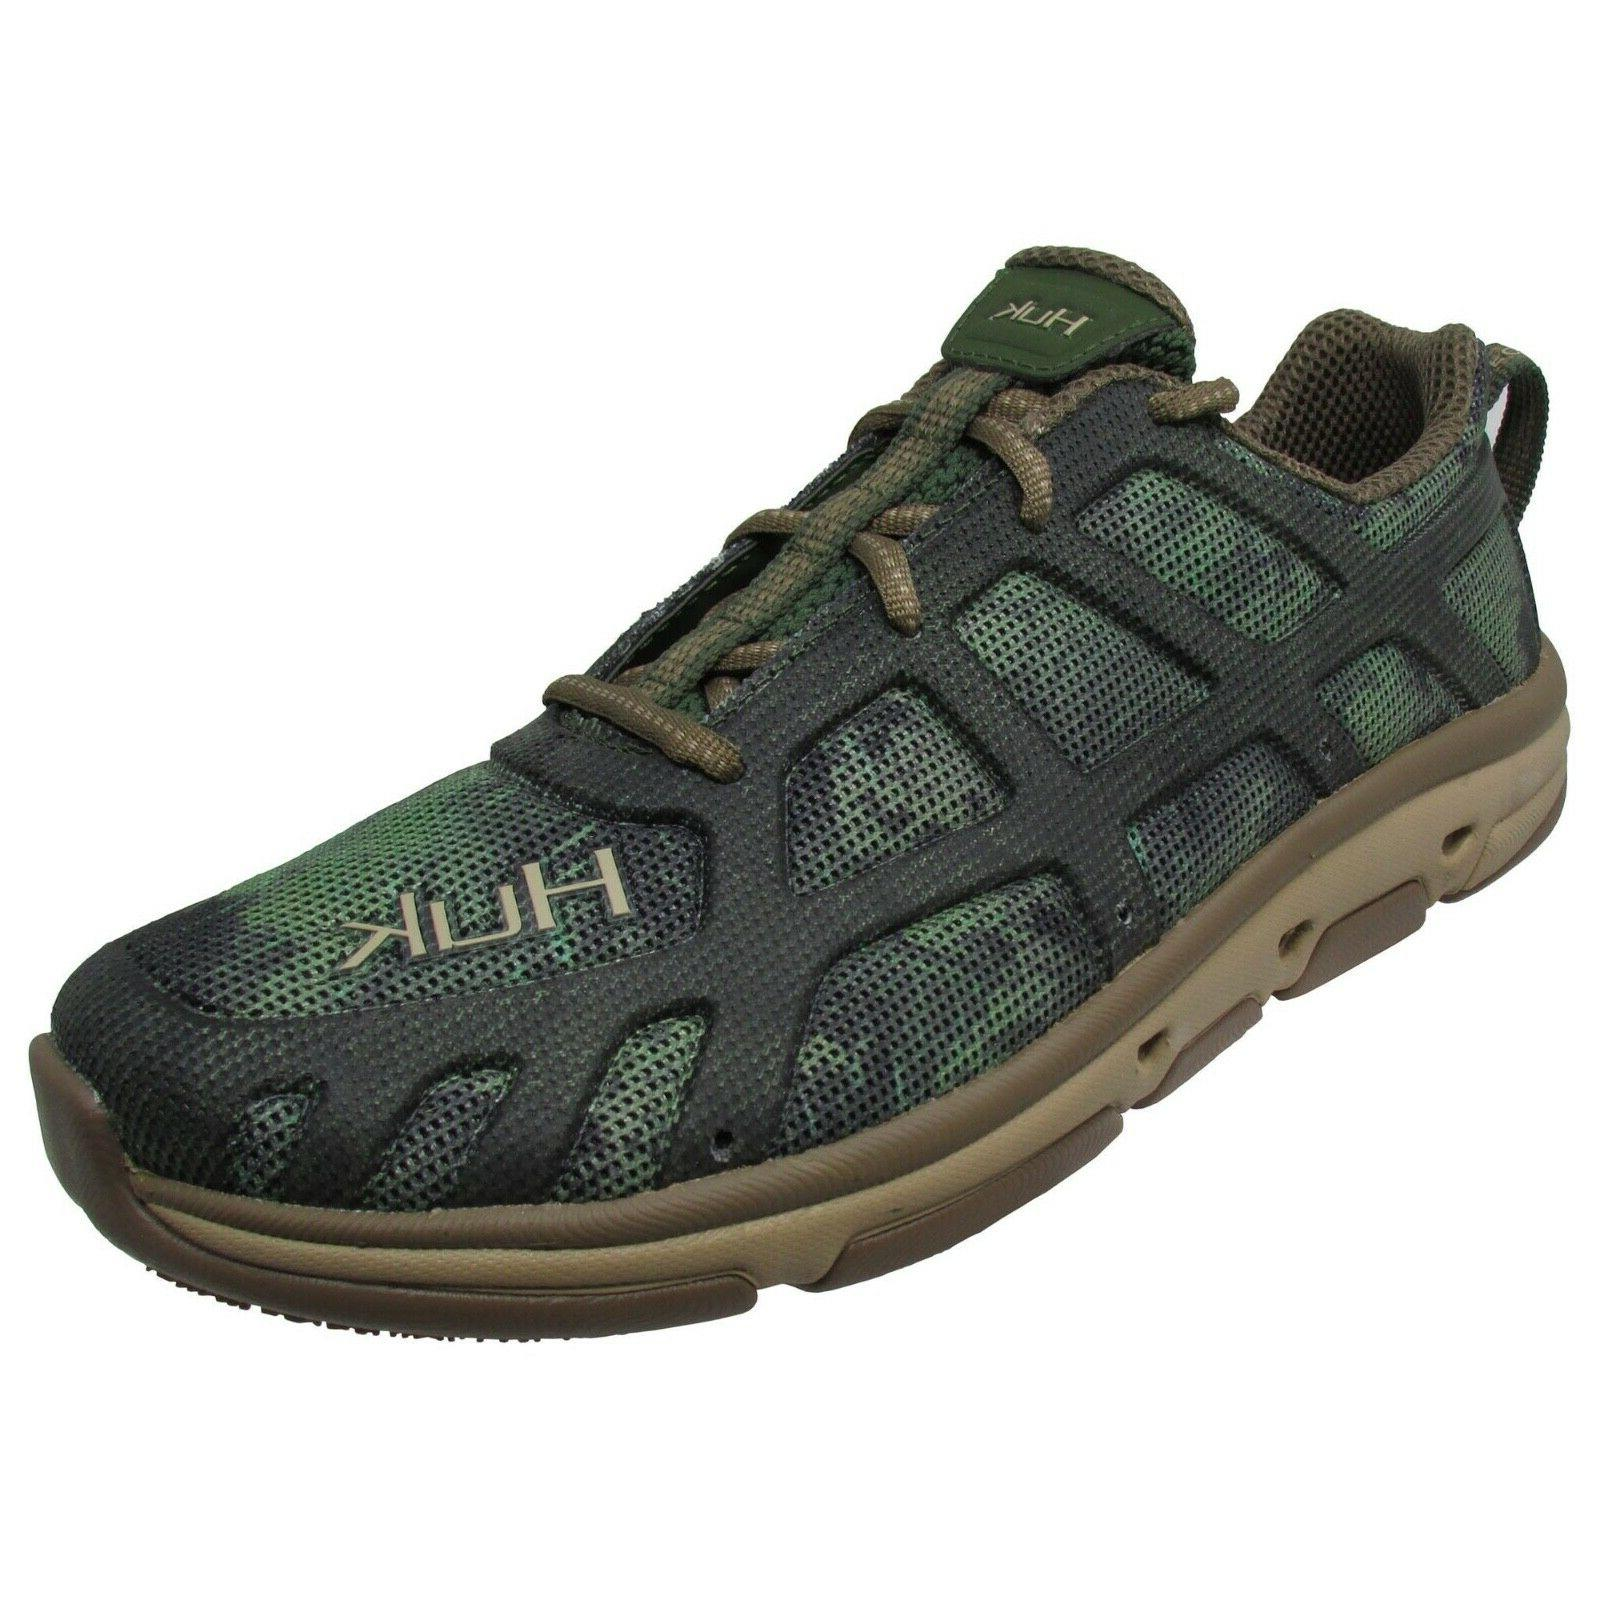 attack h8011000385 performance fishing boat water shoes